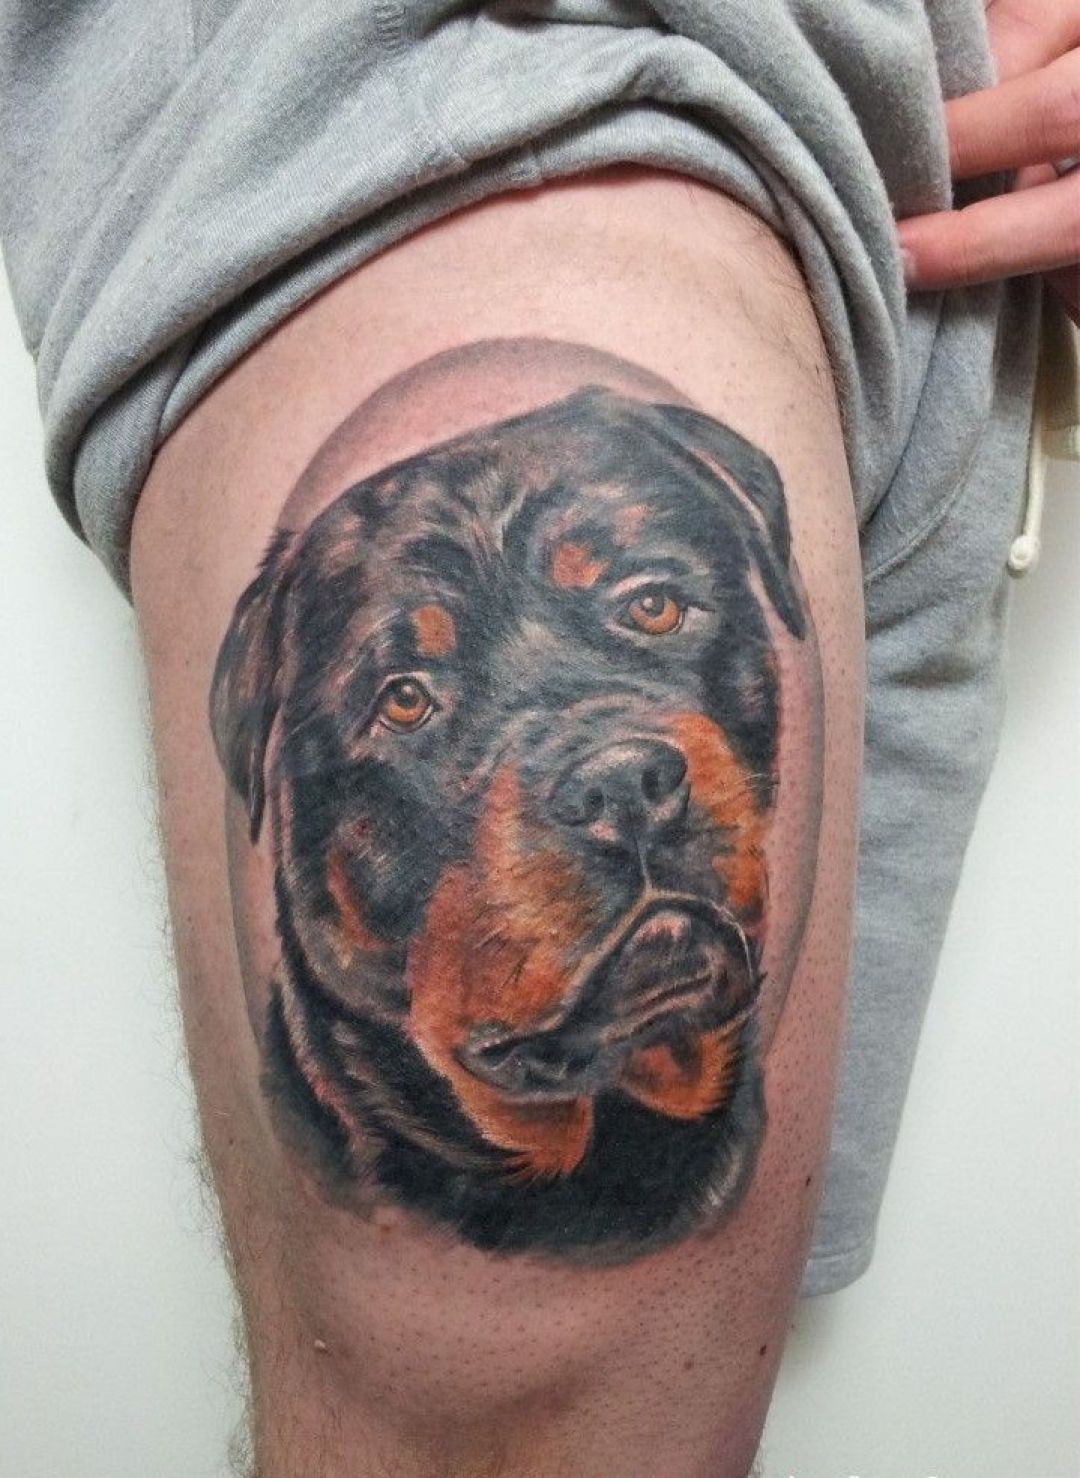 Realistic Colorful Rottweiler Head, Thigh Tattoo Design (283946) - Realistic Tattoos